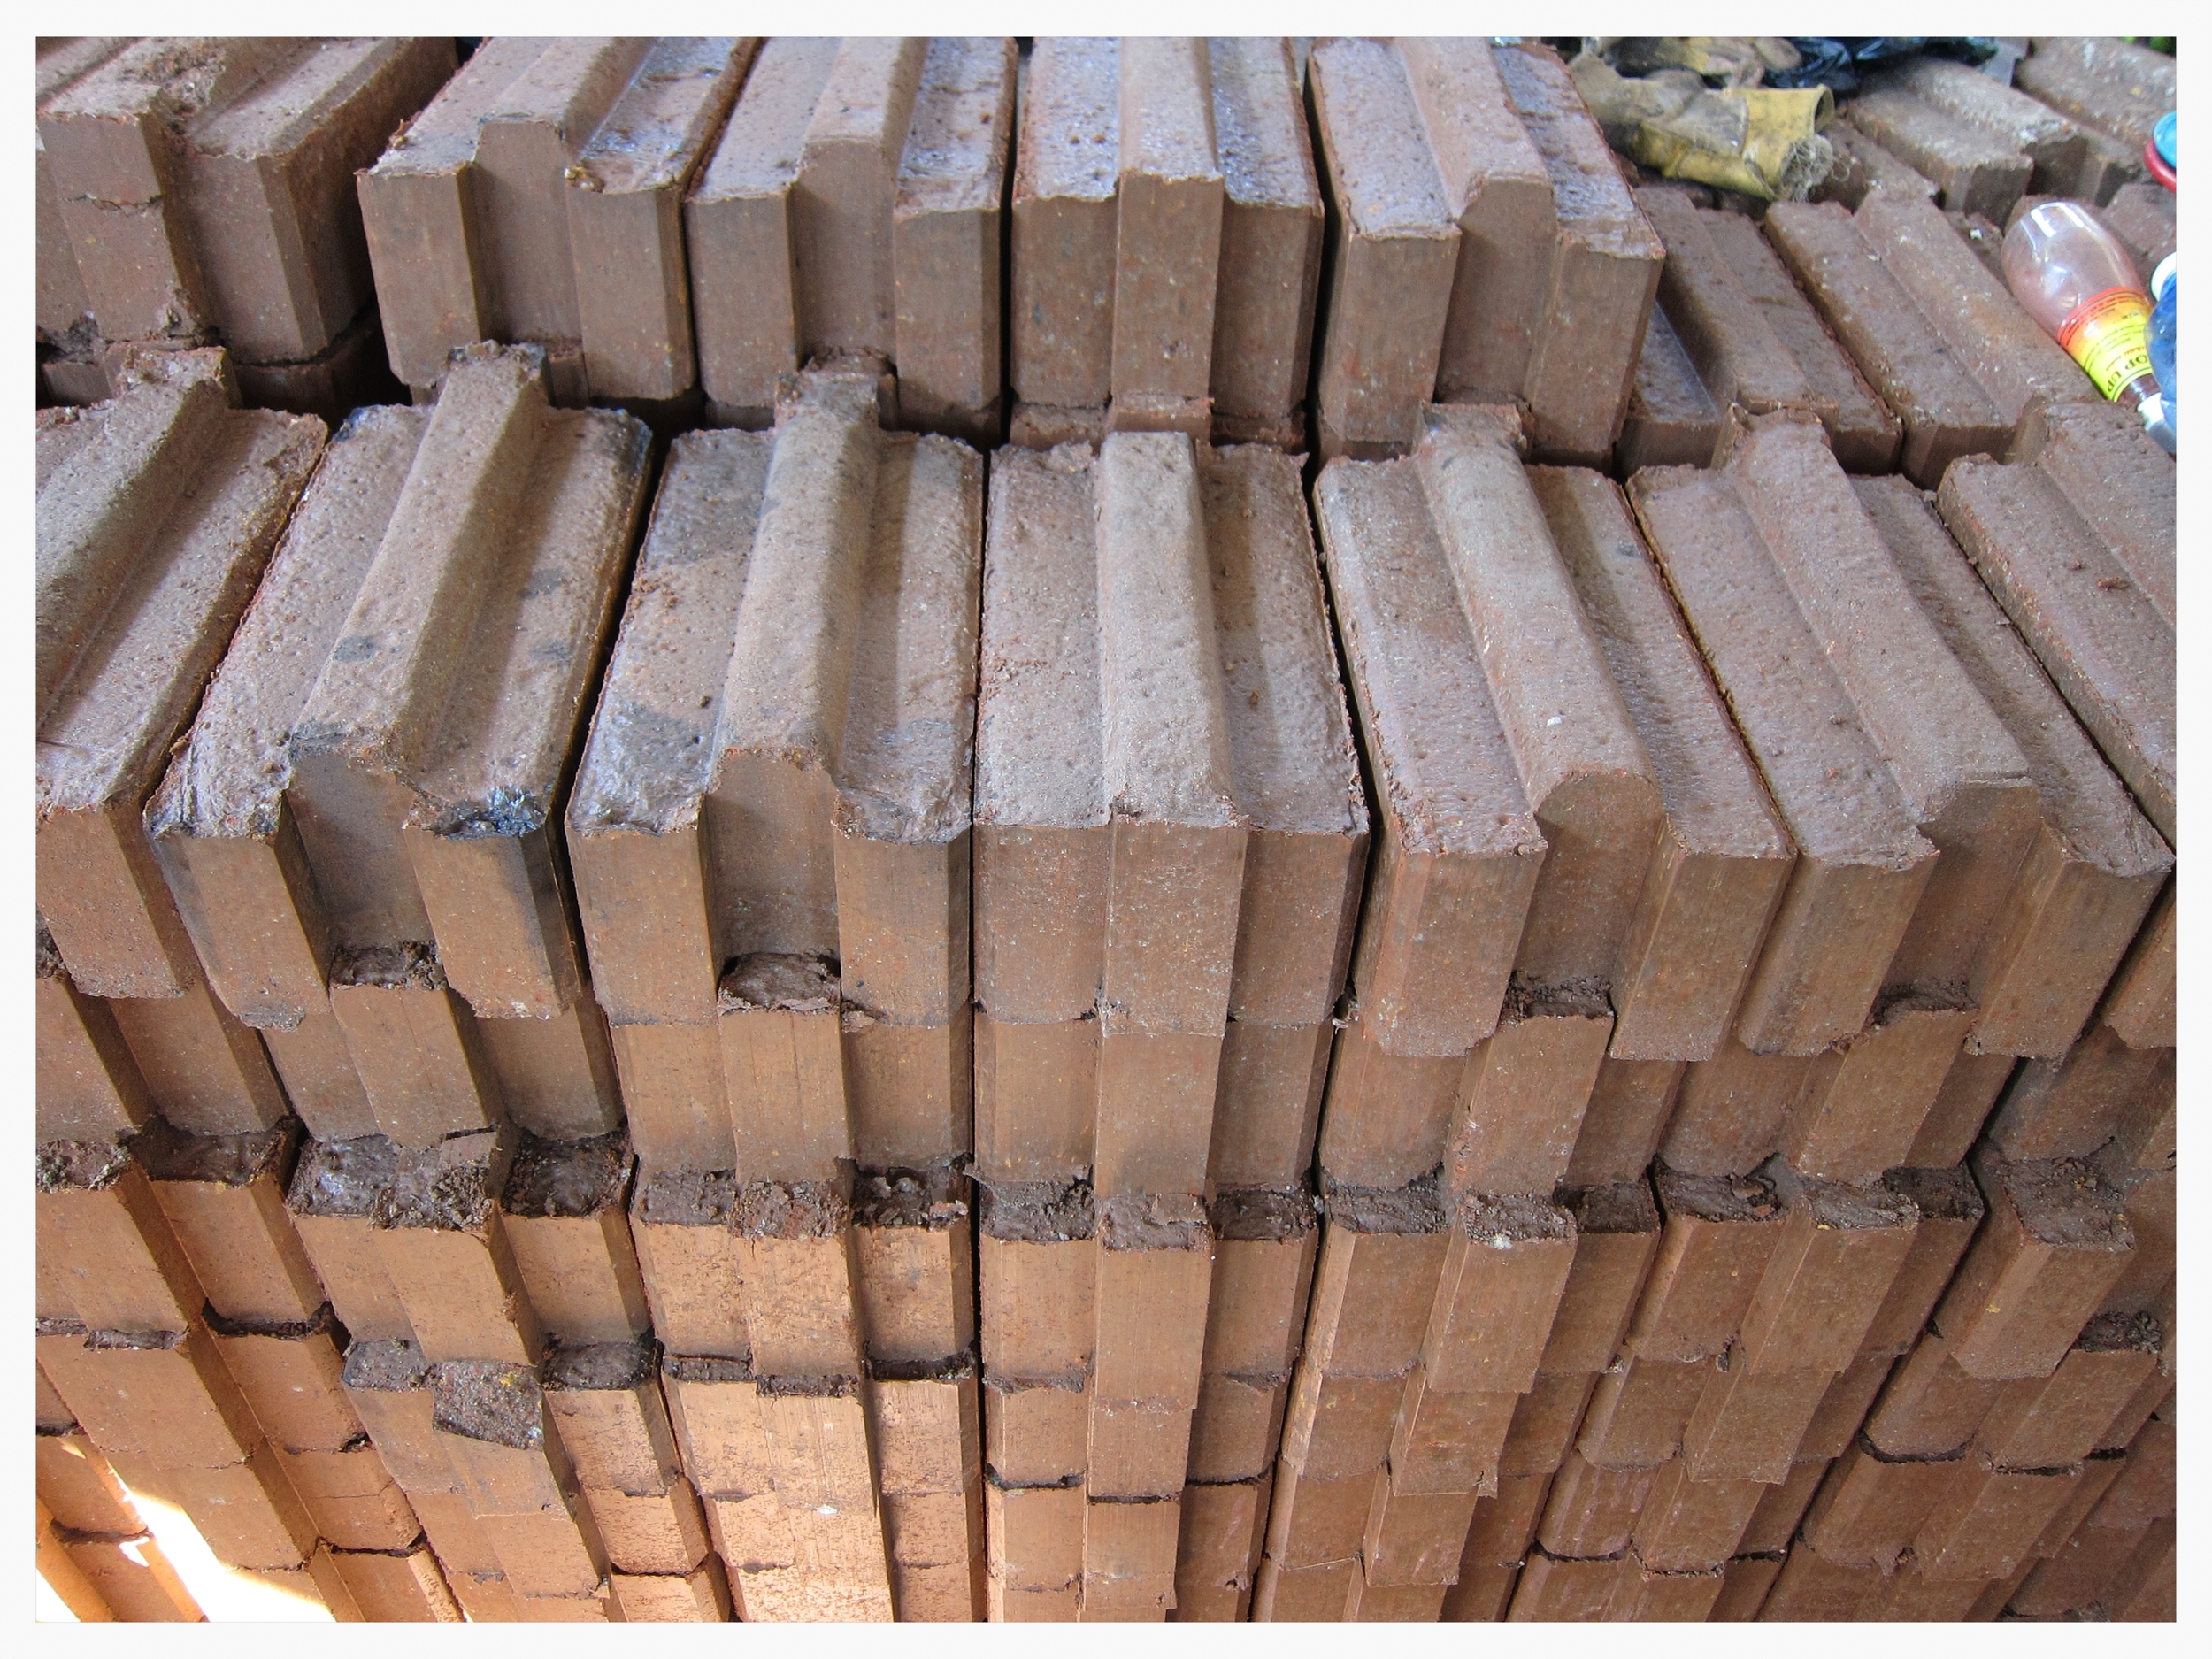 Interlocking Stabilized Soil Blocks are created using local soil combined with basic materials. They are compressed together in a brick press, and then cured for 30 days, rather than fired, saving the cost and toil of gathering firewood.